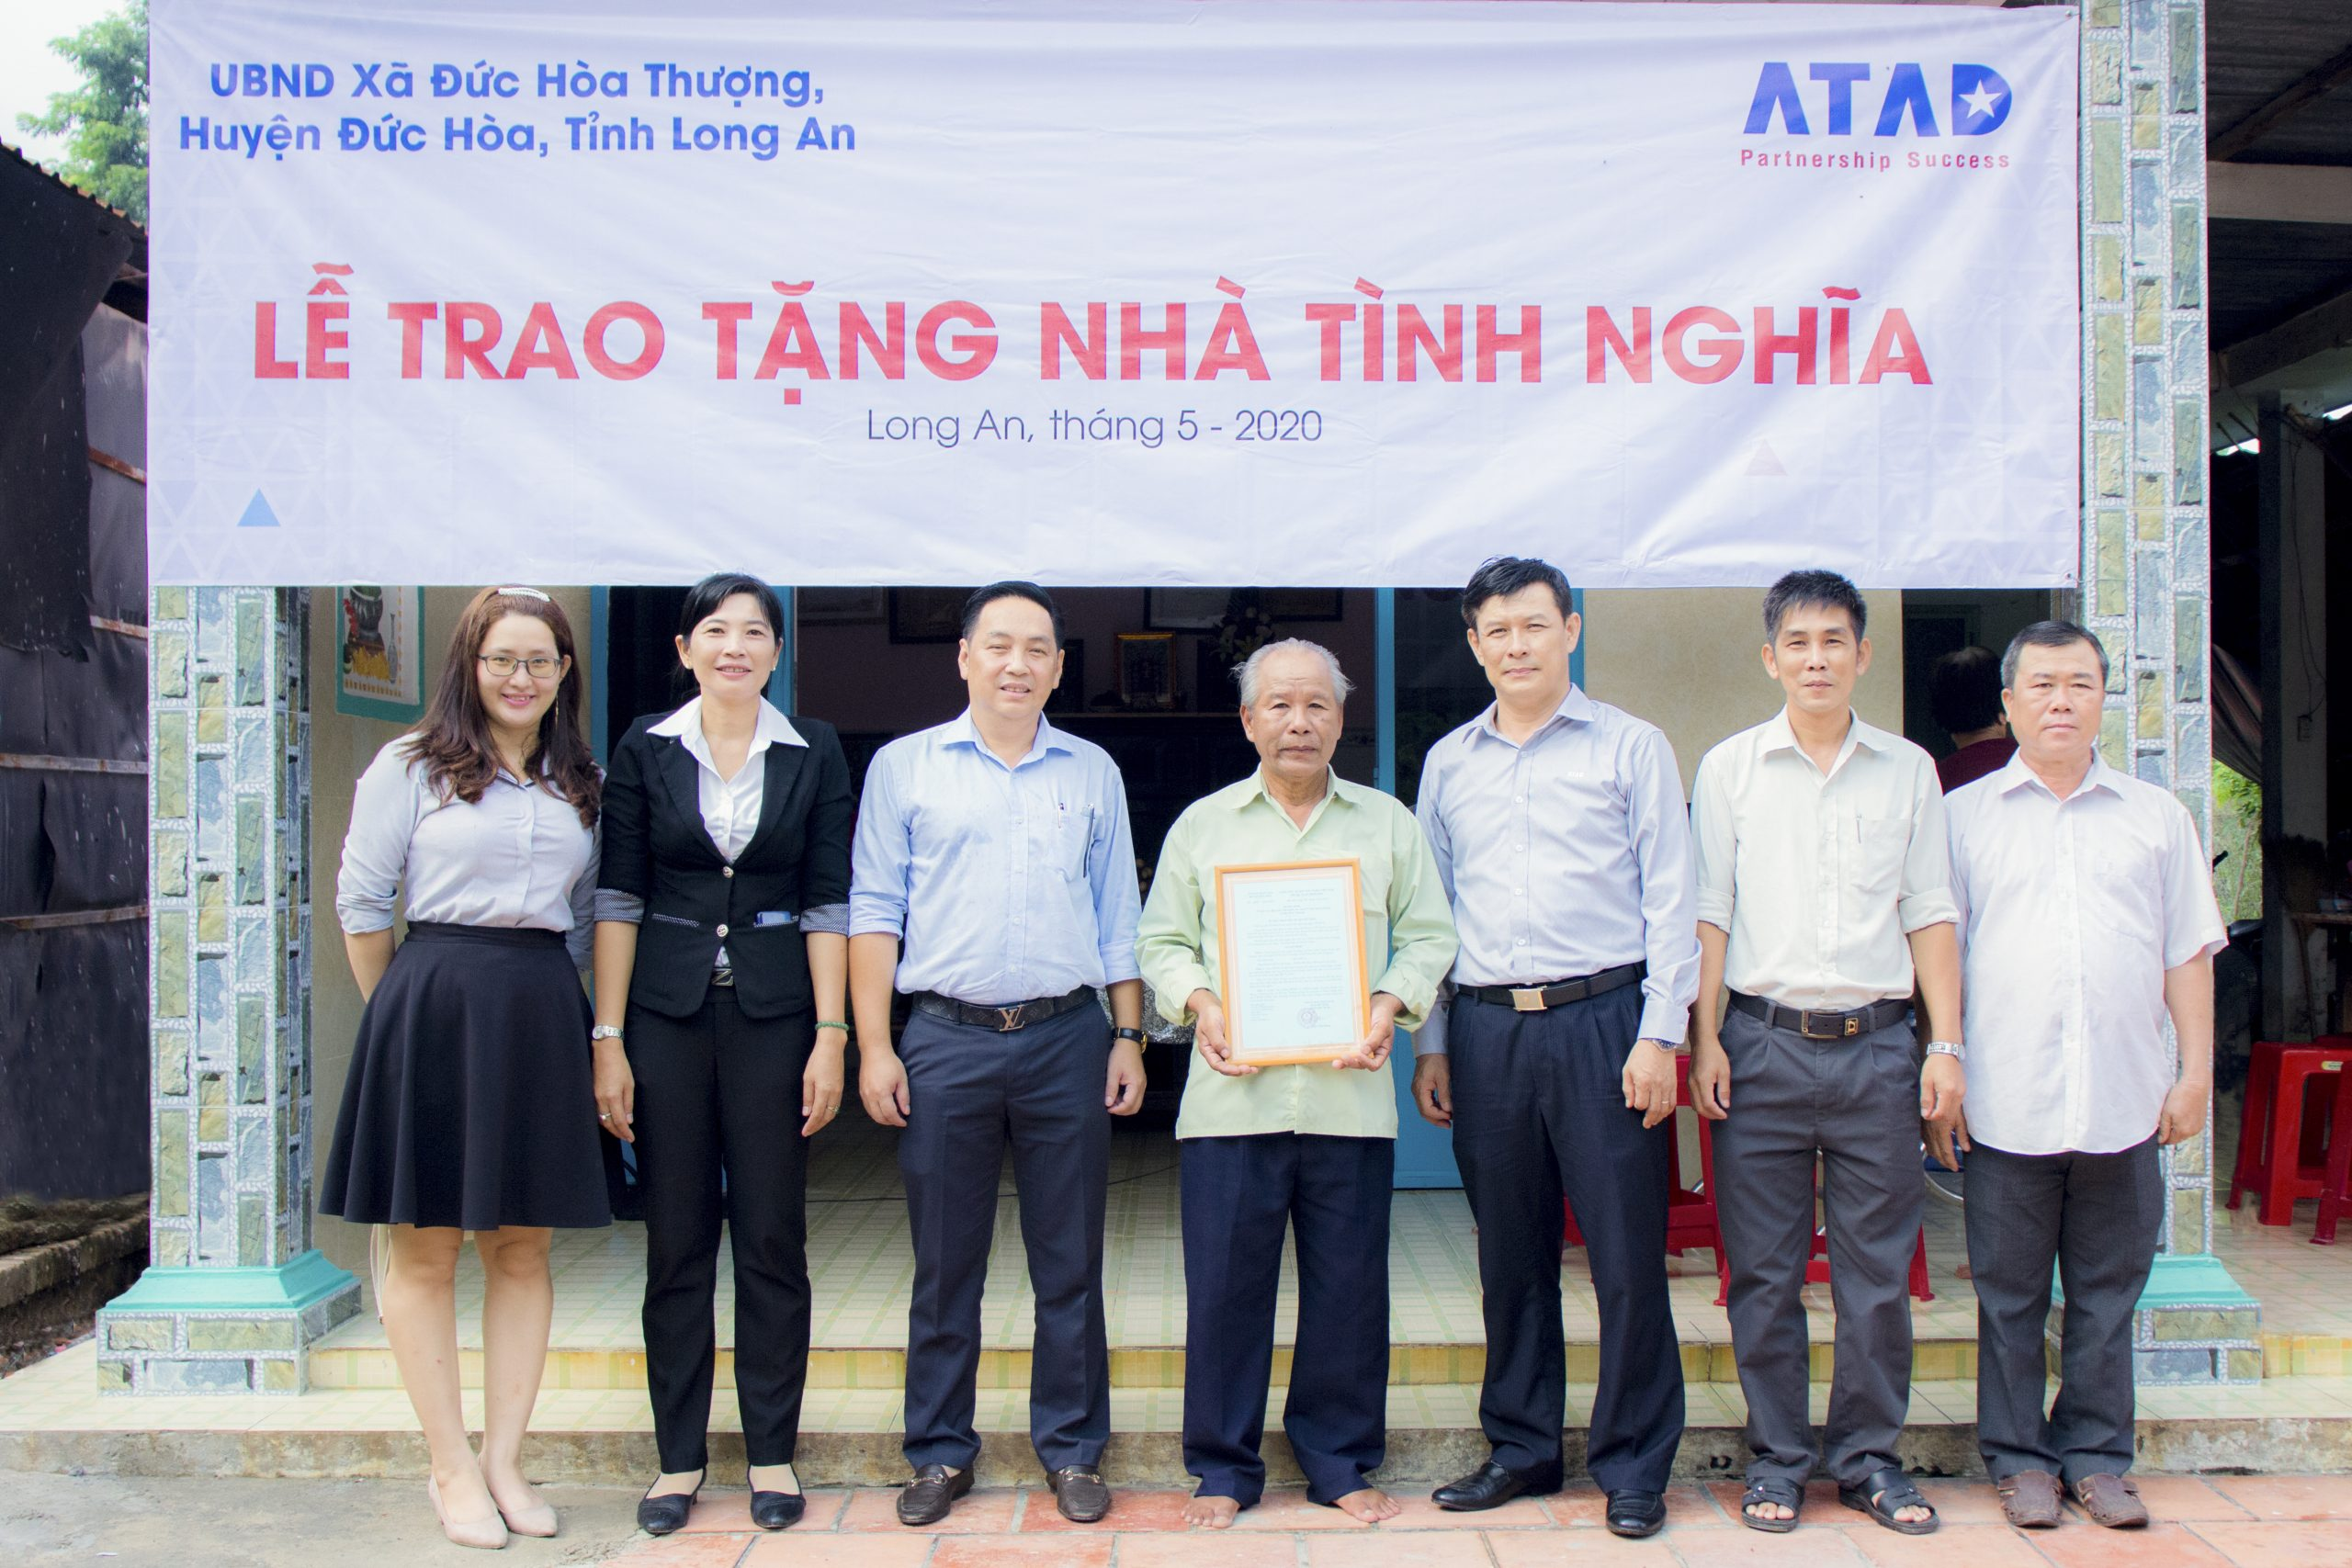 ATAD presented houses of gratitude in Duc Hoa district, Long An province